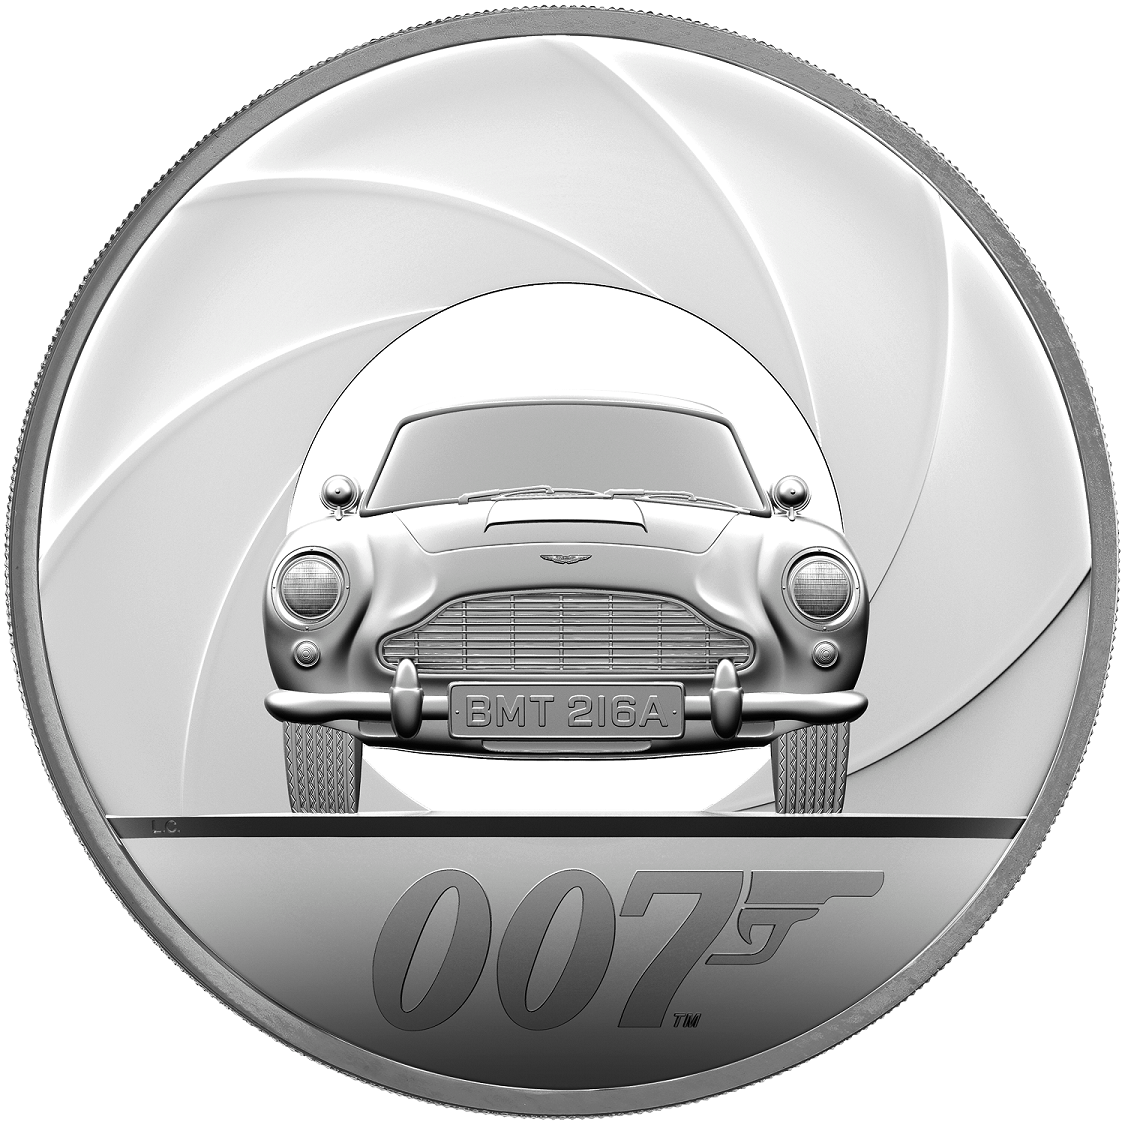 2021 James Bond Special Issue